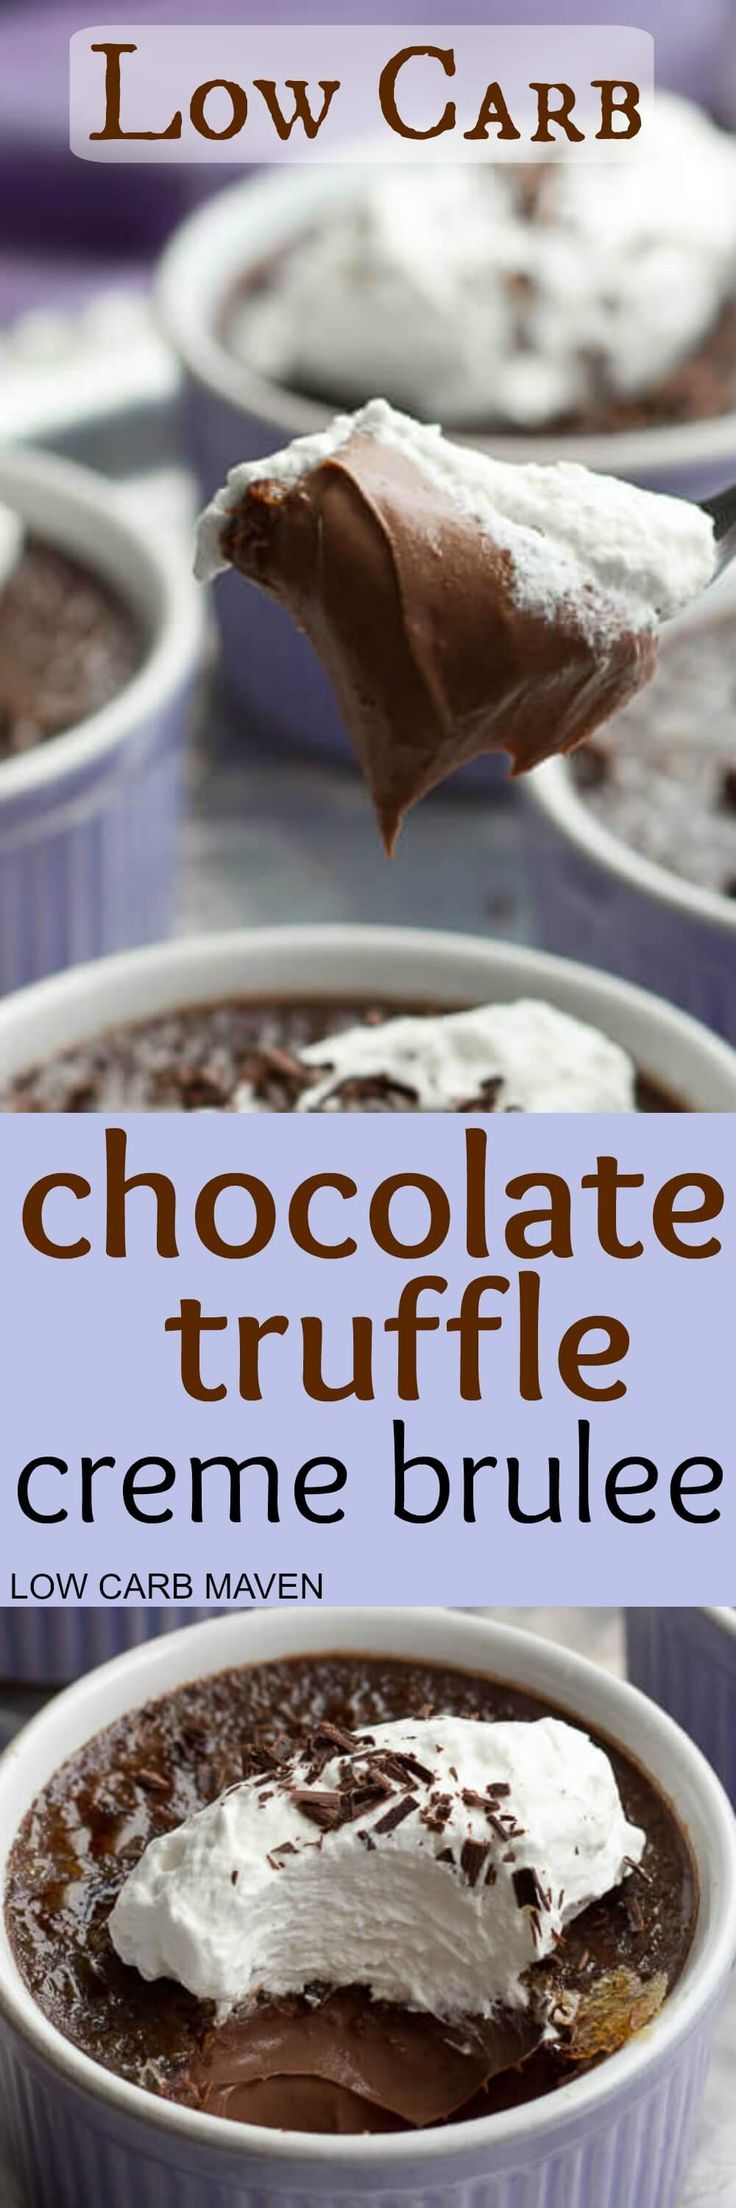 This low carb chocolate creme brulee is just as rich and creamy as a chocolate truffle. It's is the ultimate in low carb chocolate desserts.